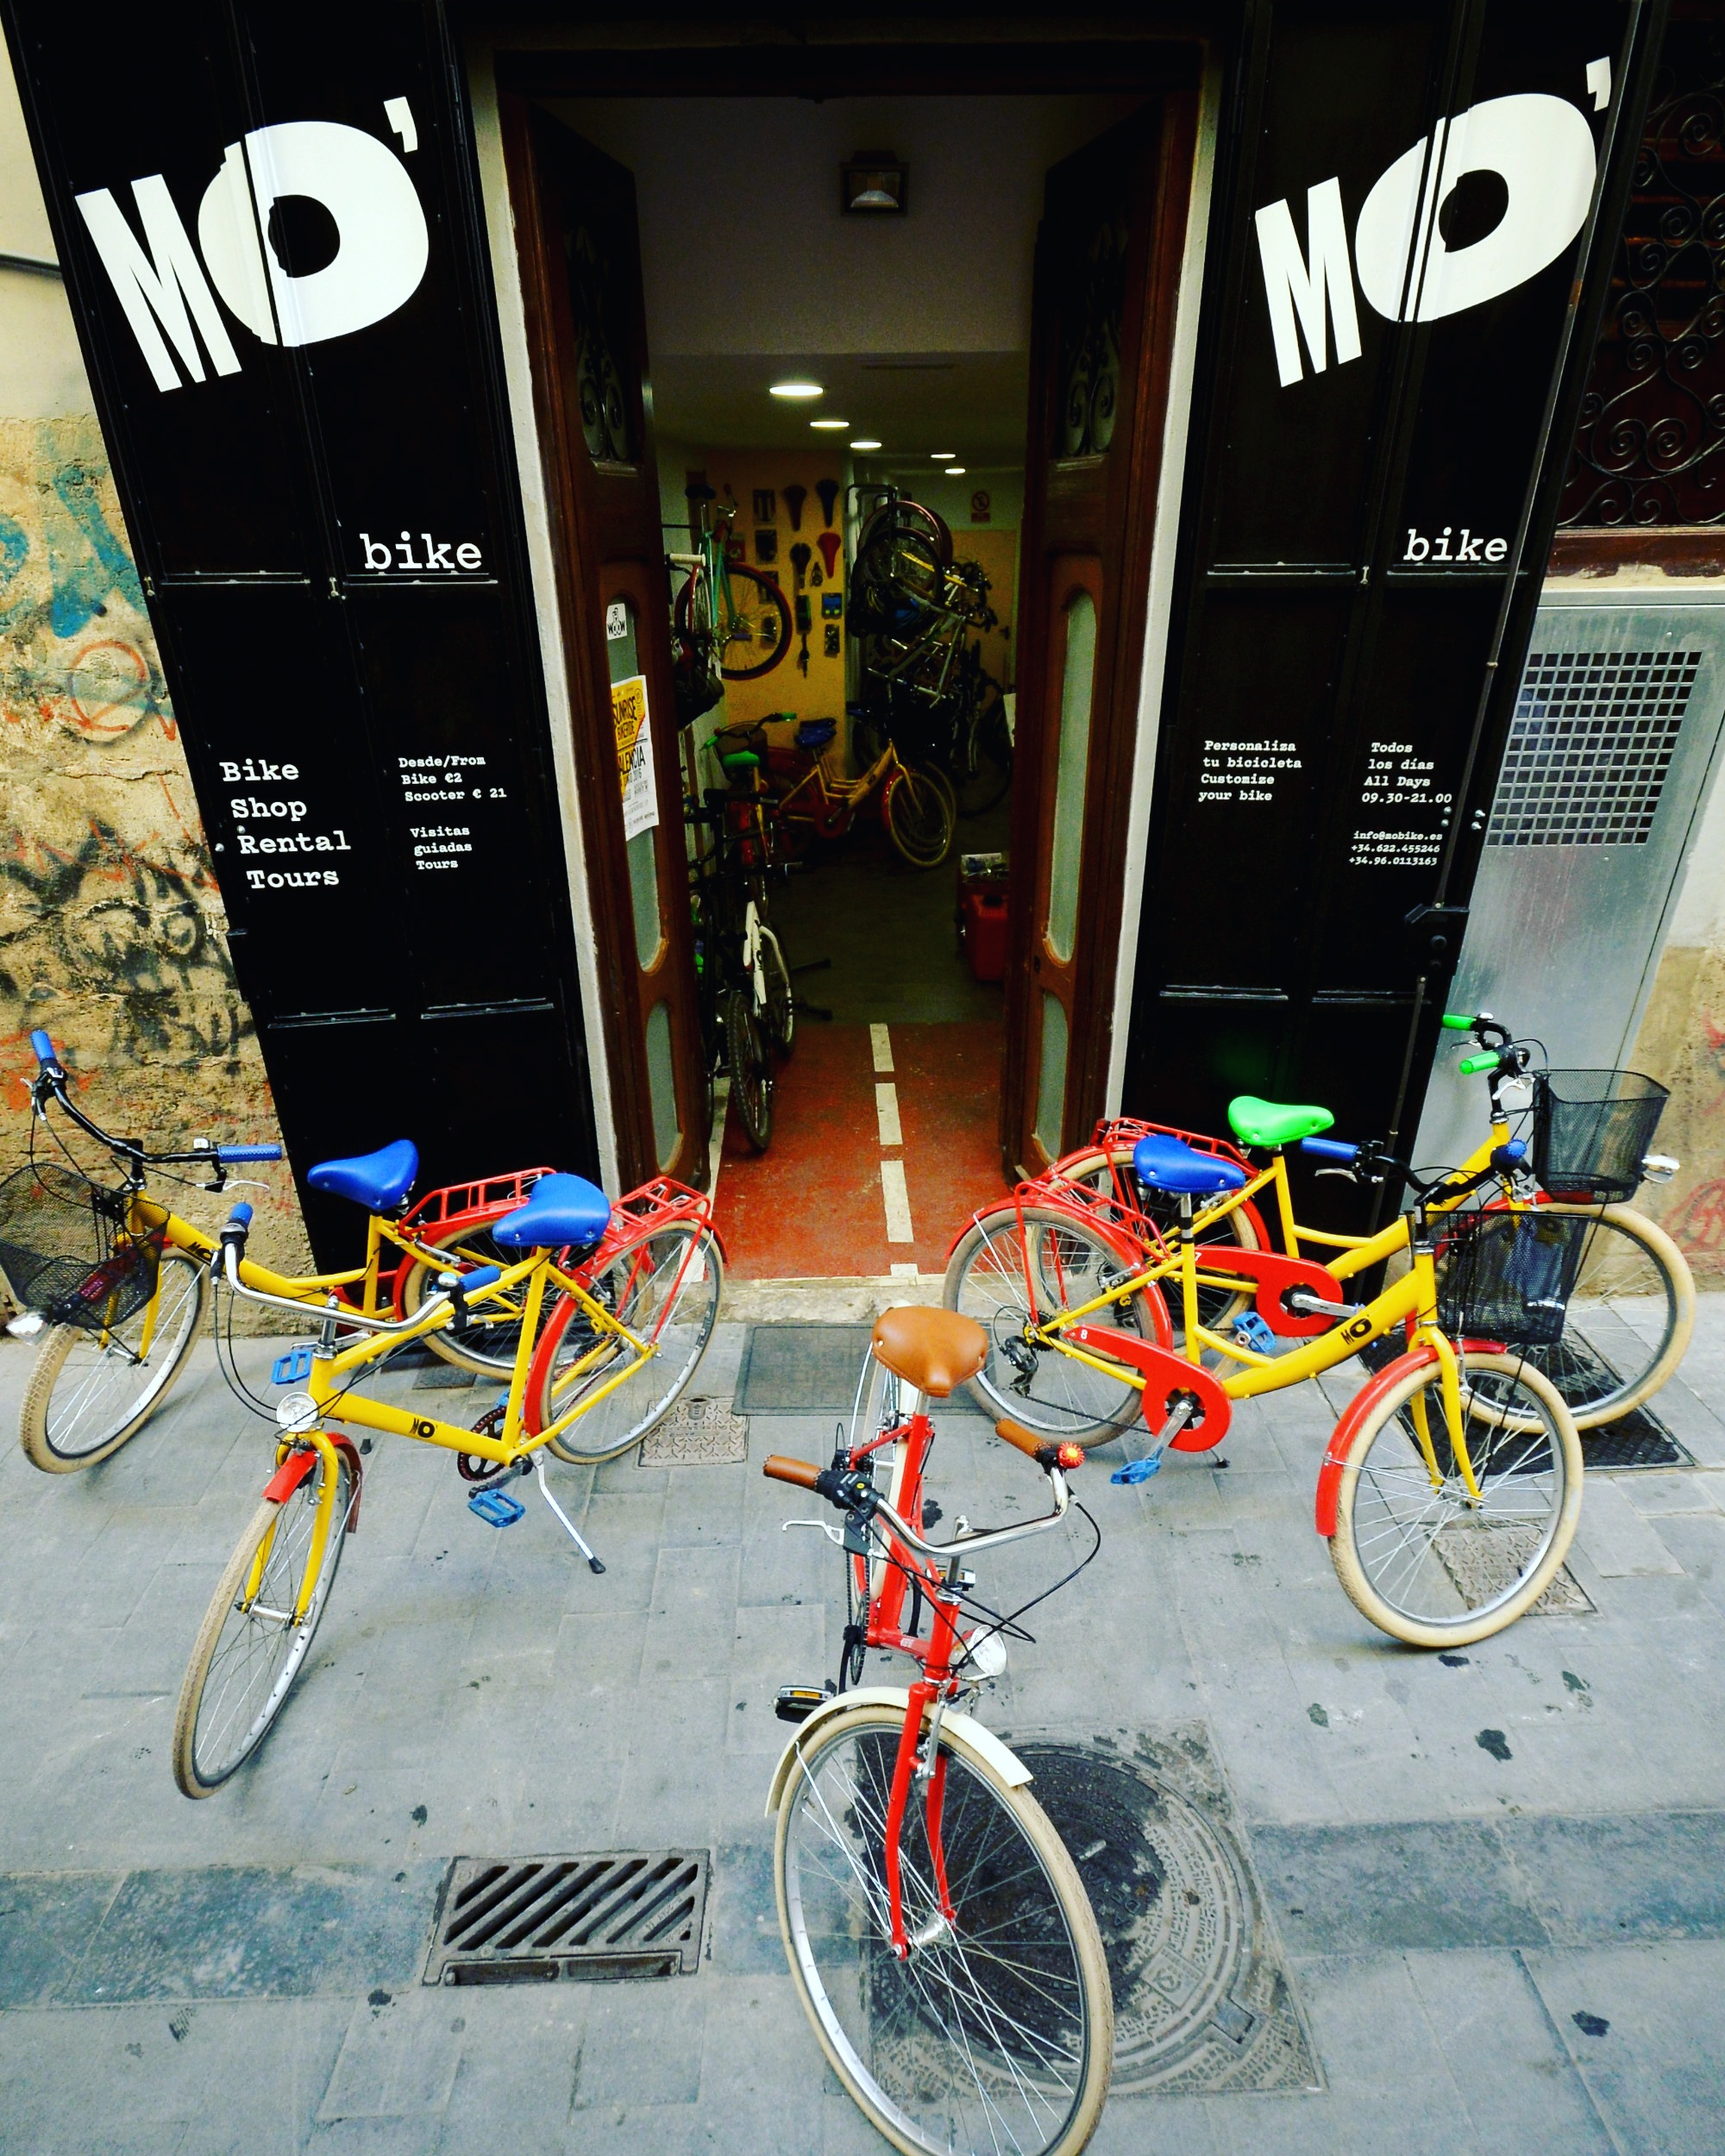 Rent a bike at MO'bike in Valencia?